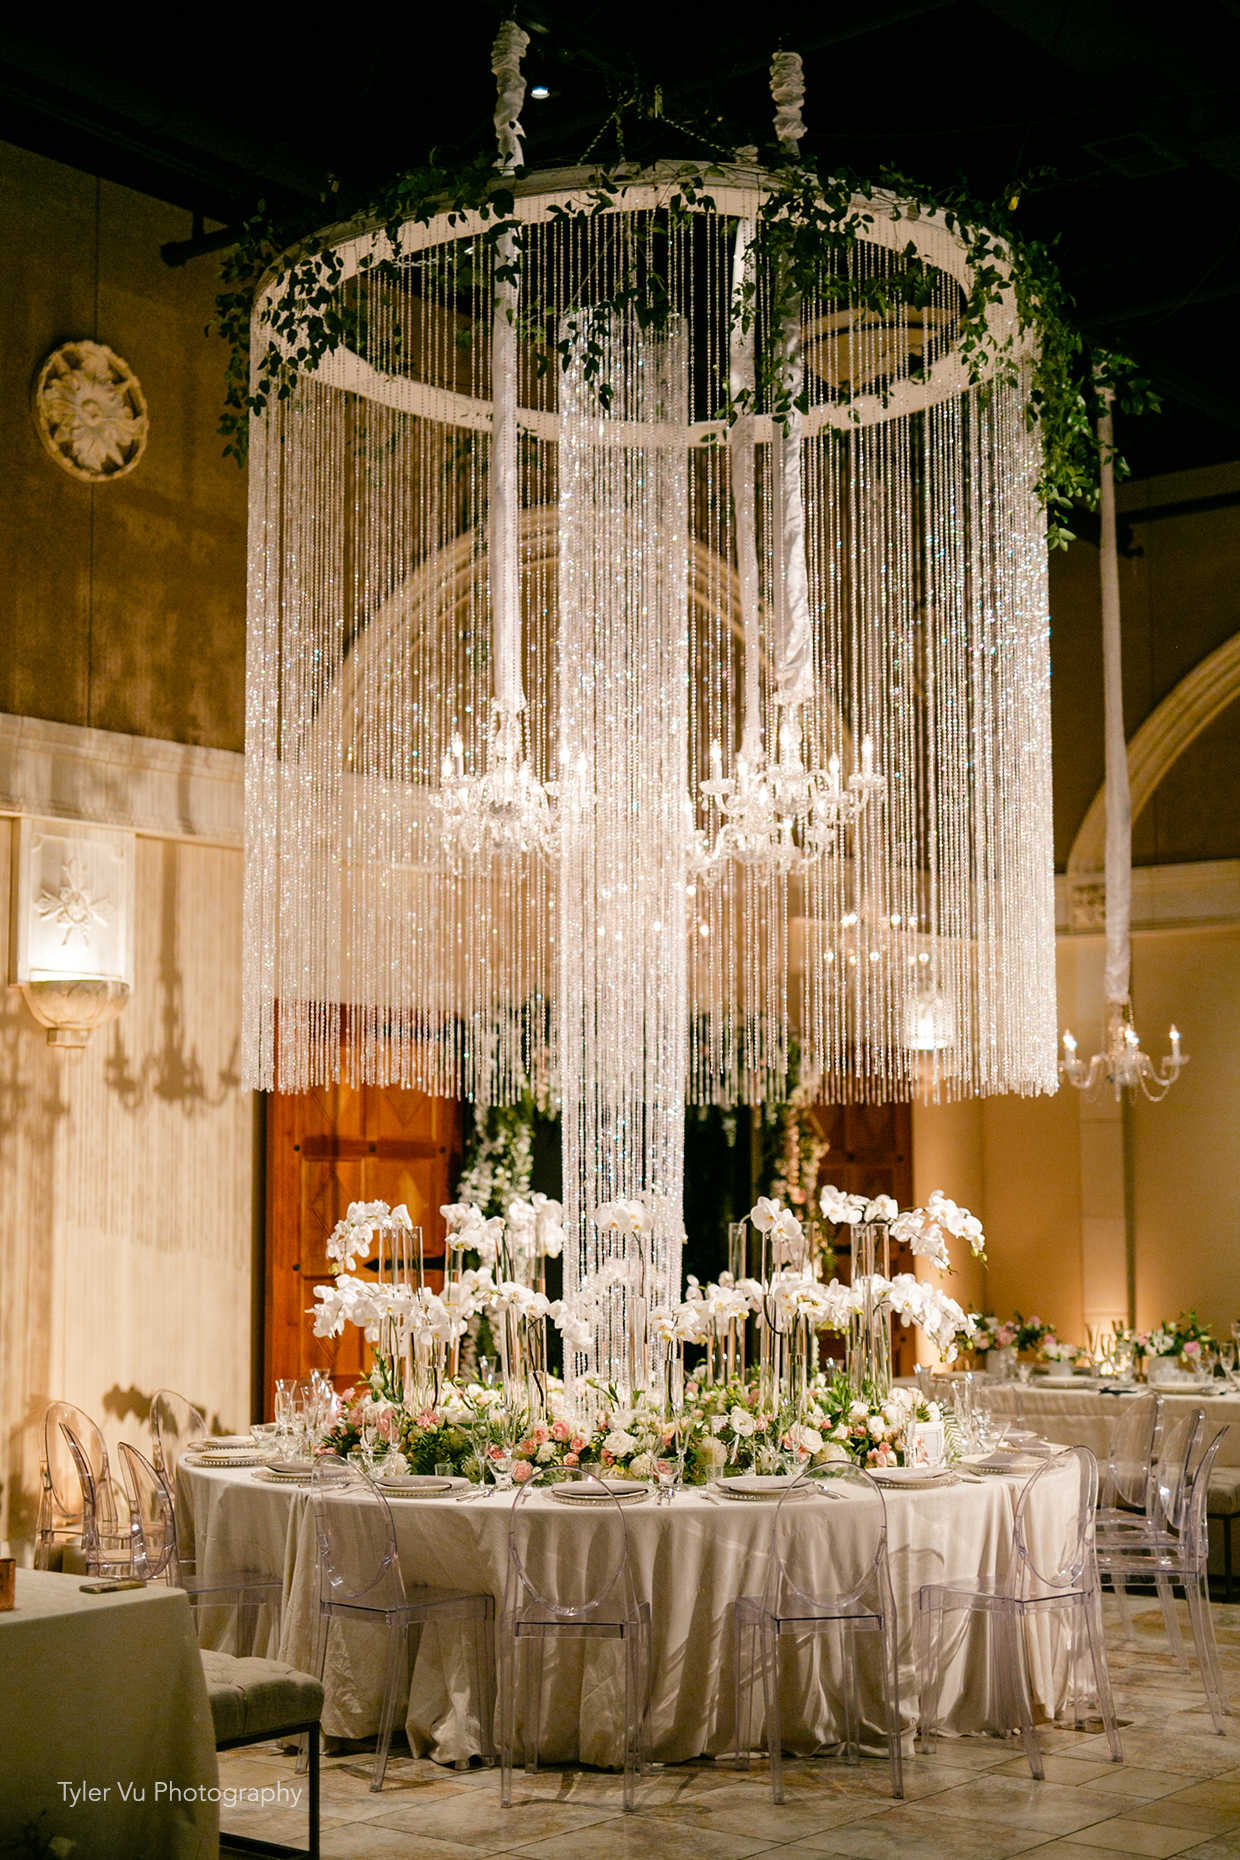 Stunning wedding reception table with overhead chandelier and orchid centerpieces at Casa Real at Ruby Hill Winery (www.casarealevents.com).  Photo by: Tyler Vu Photography; Florals and Design: Nicole Ha Design; Lighting: Fantasy Sound Event Services; Chairs: Pleasanton Rentals